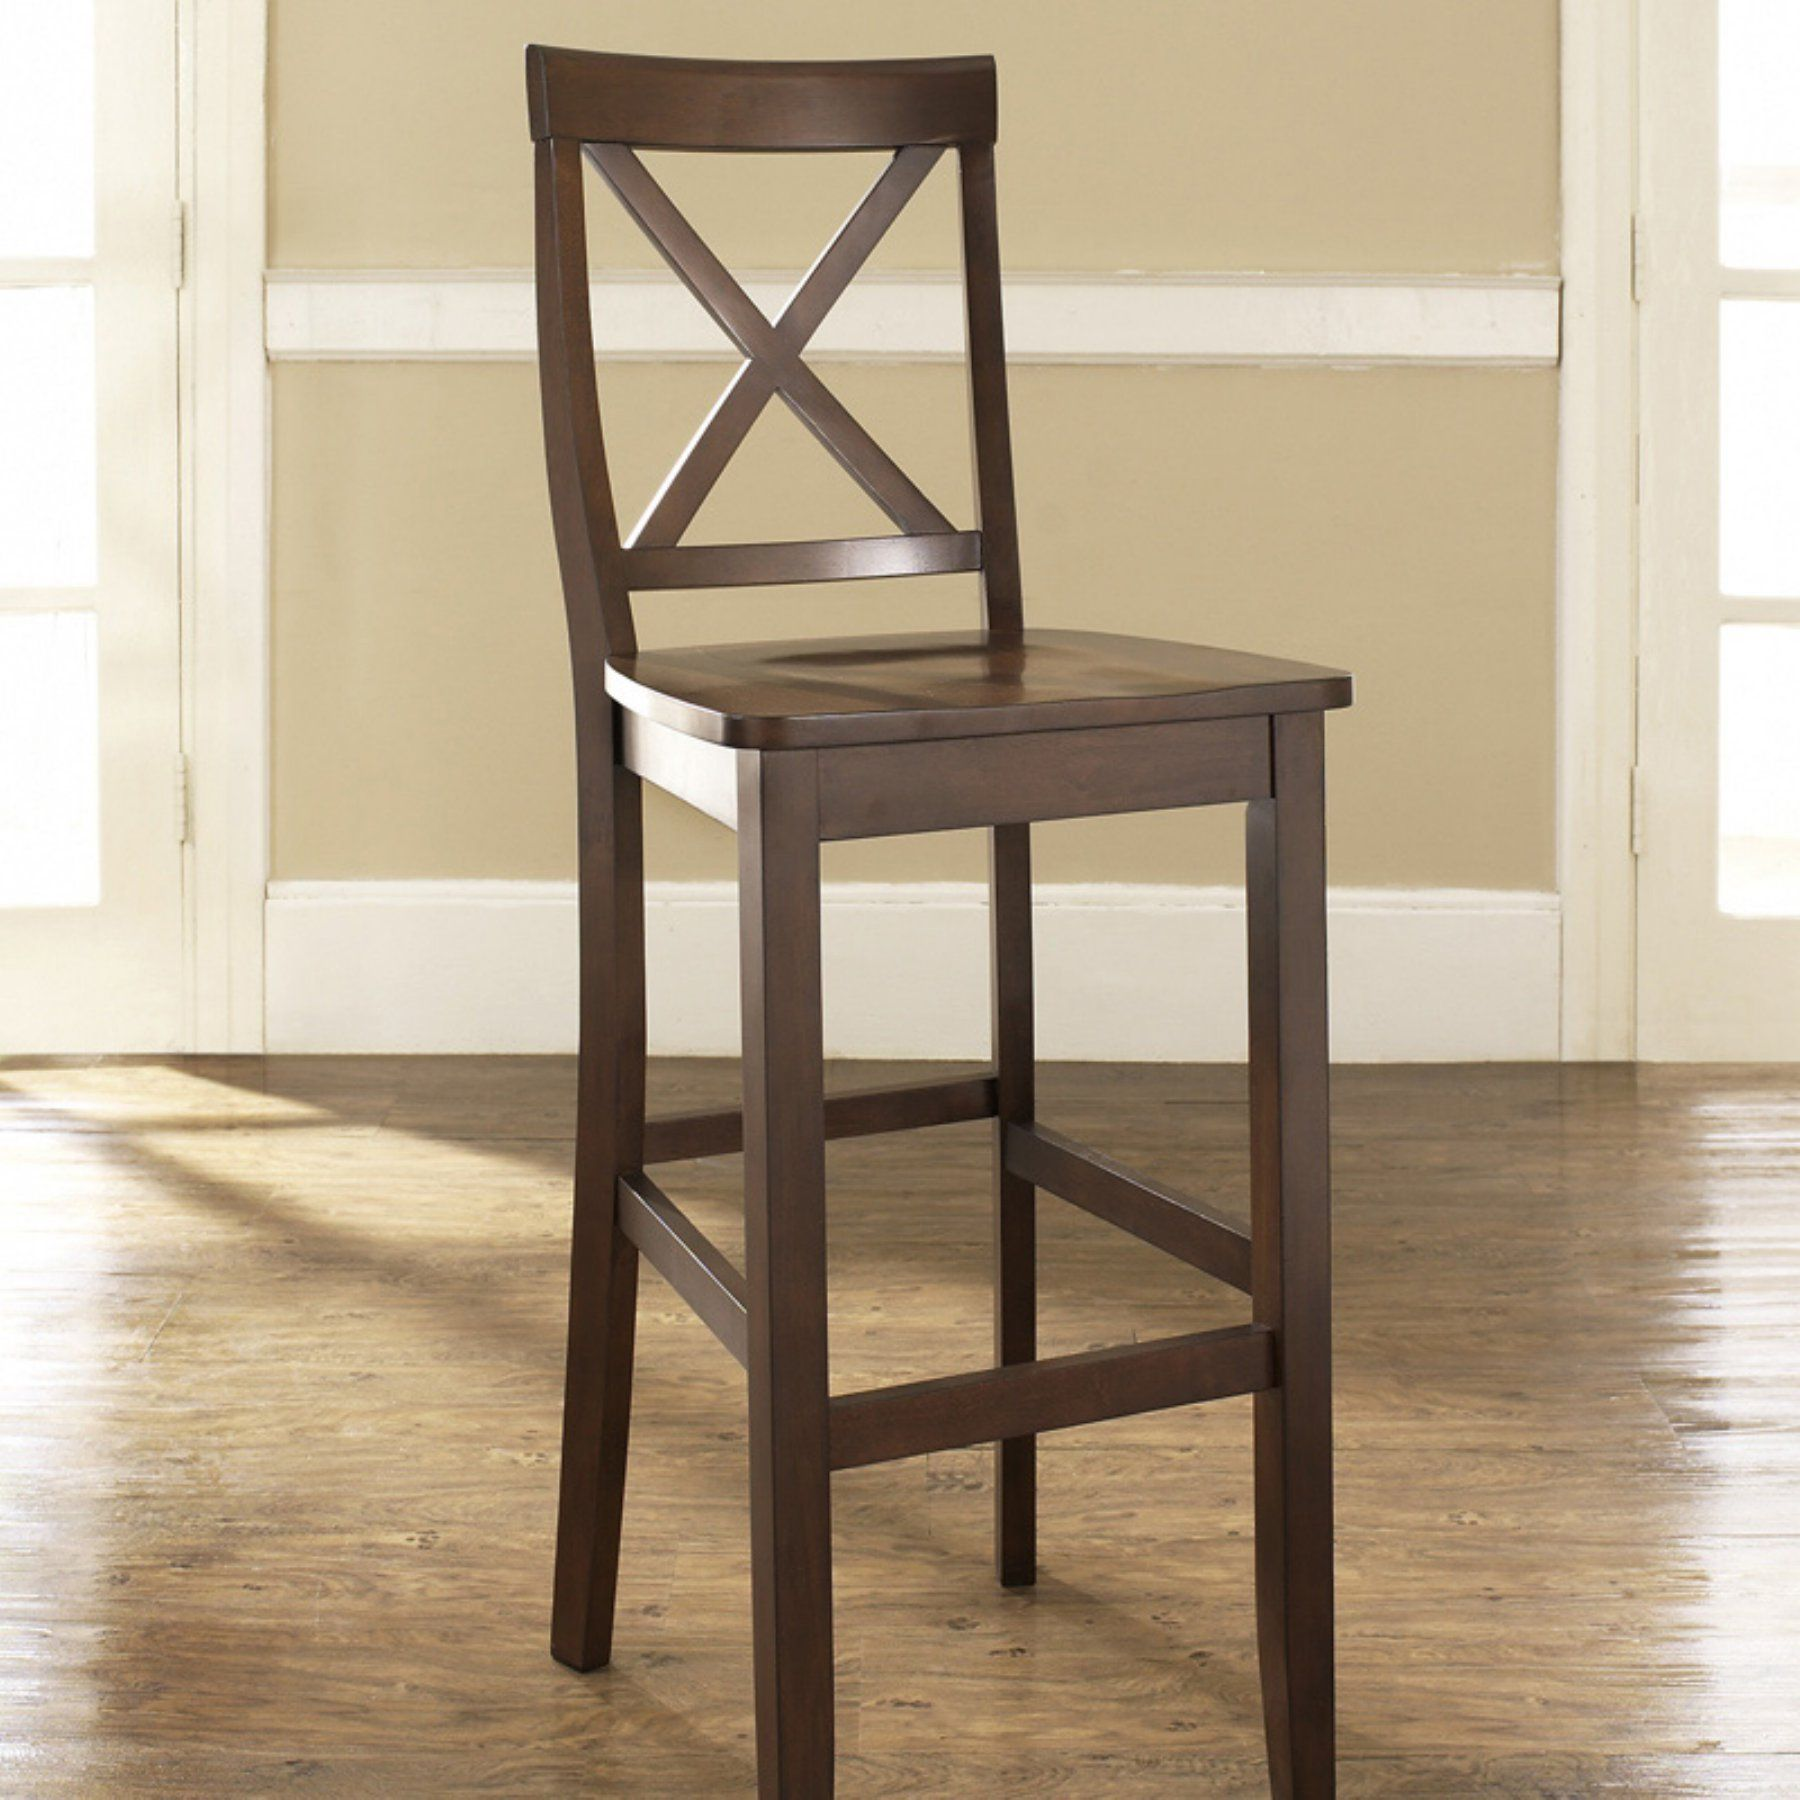 Crosley X Back 30 In Bar Stool Set Of 2 Wood Bar Stools Bar